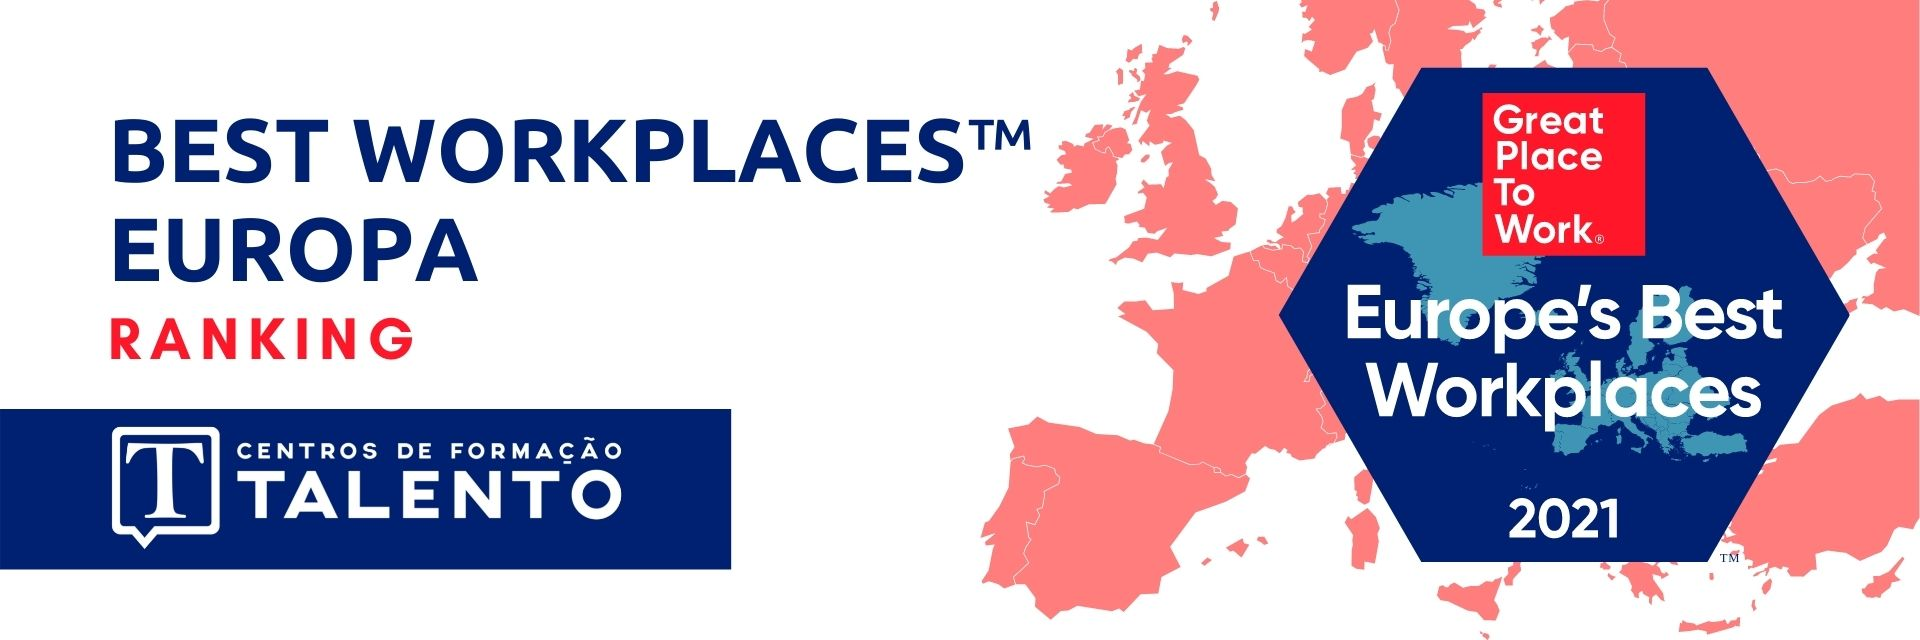 Best Workplaces Europa